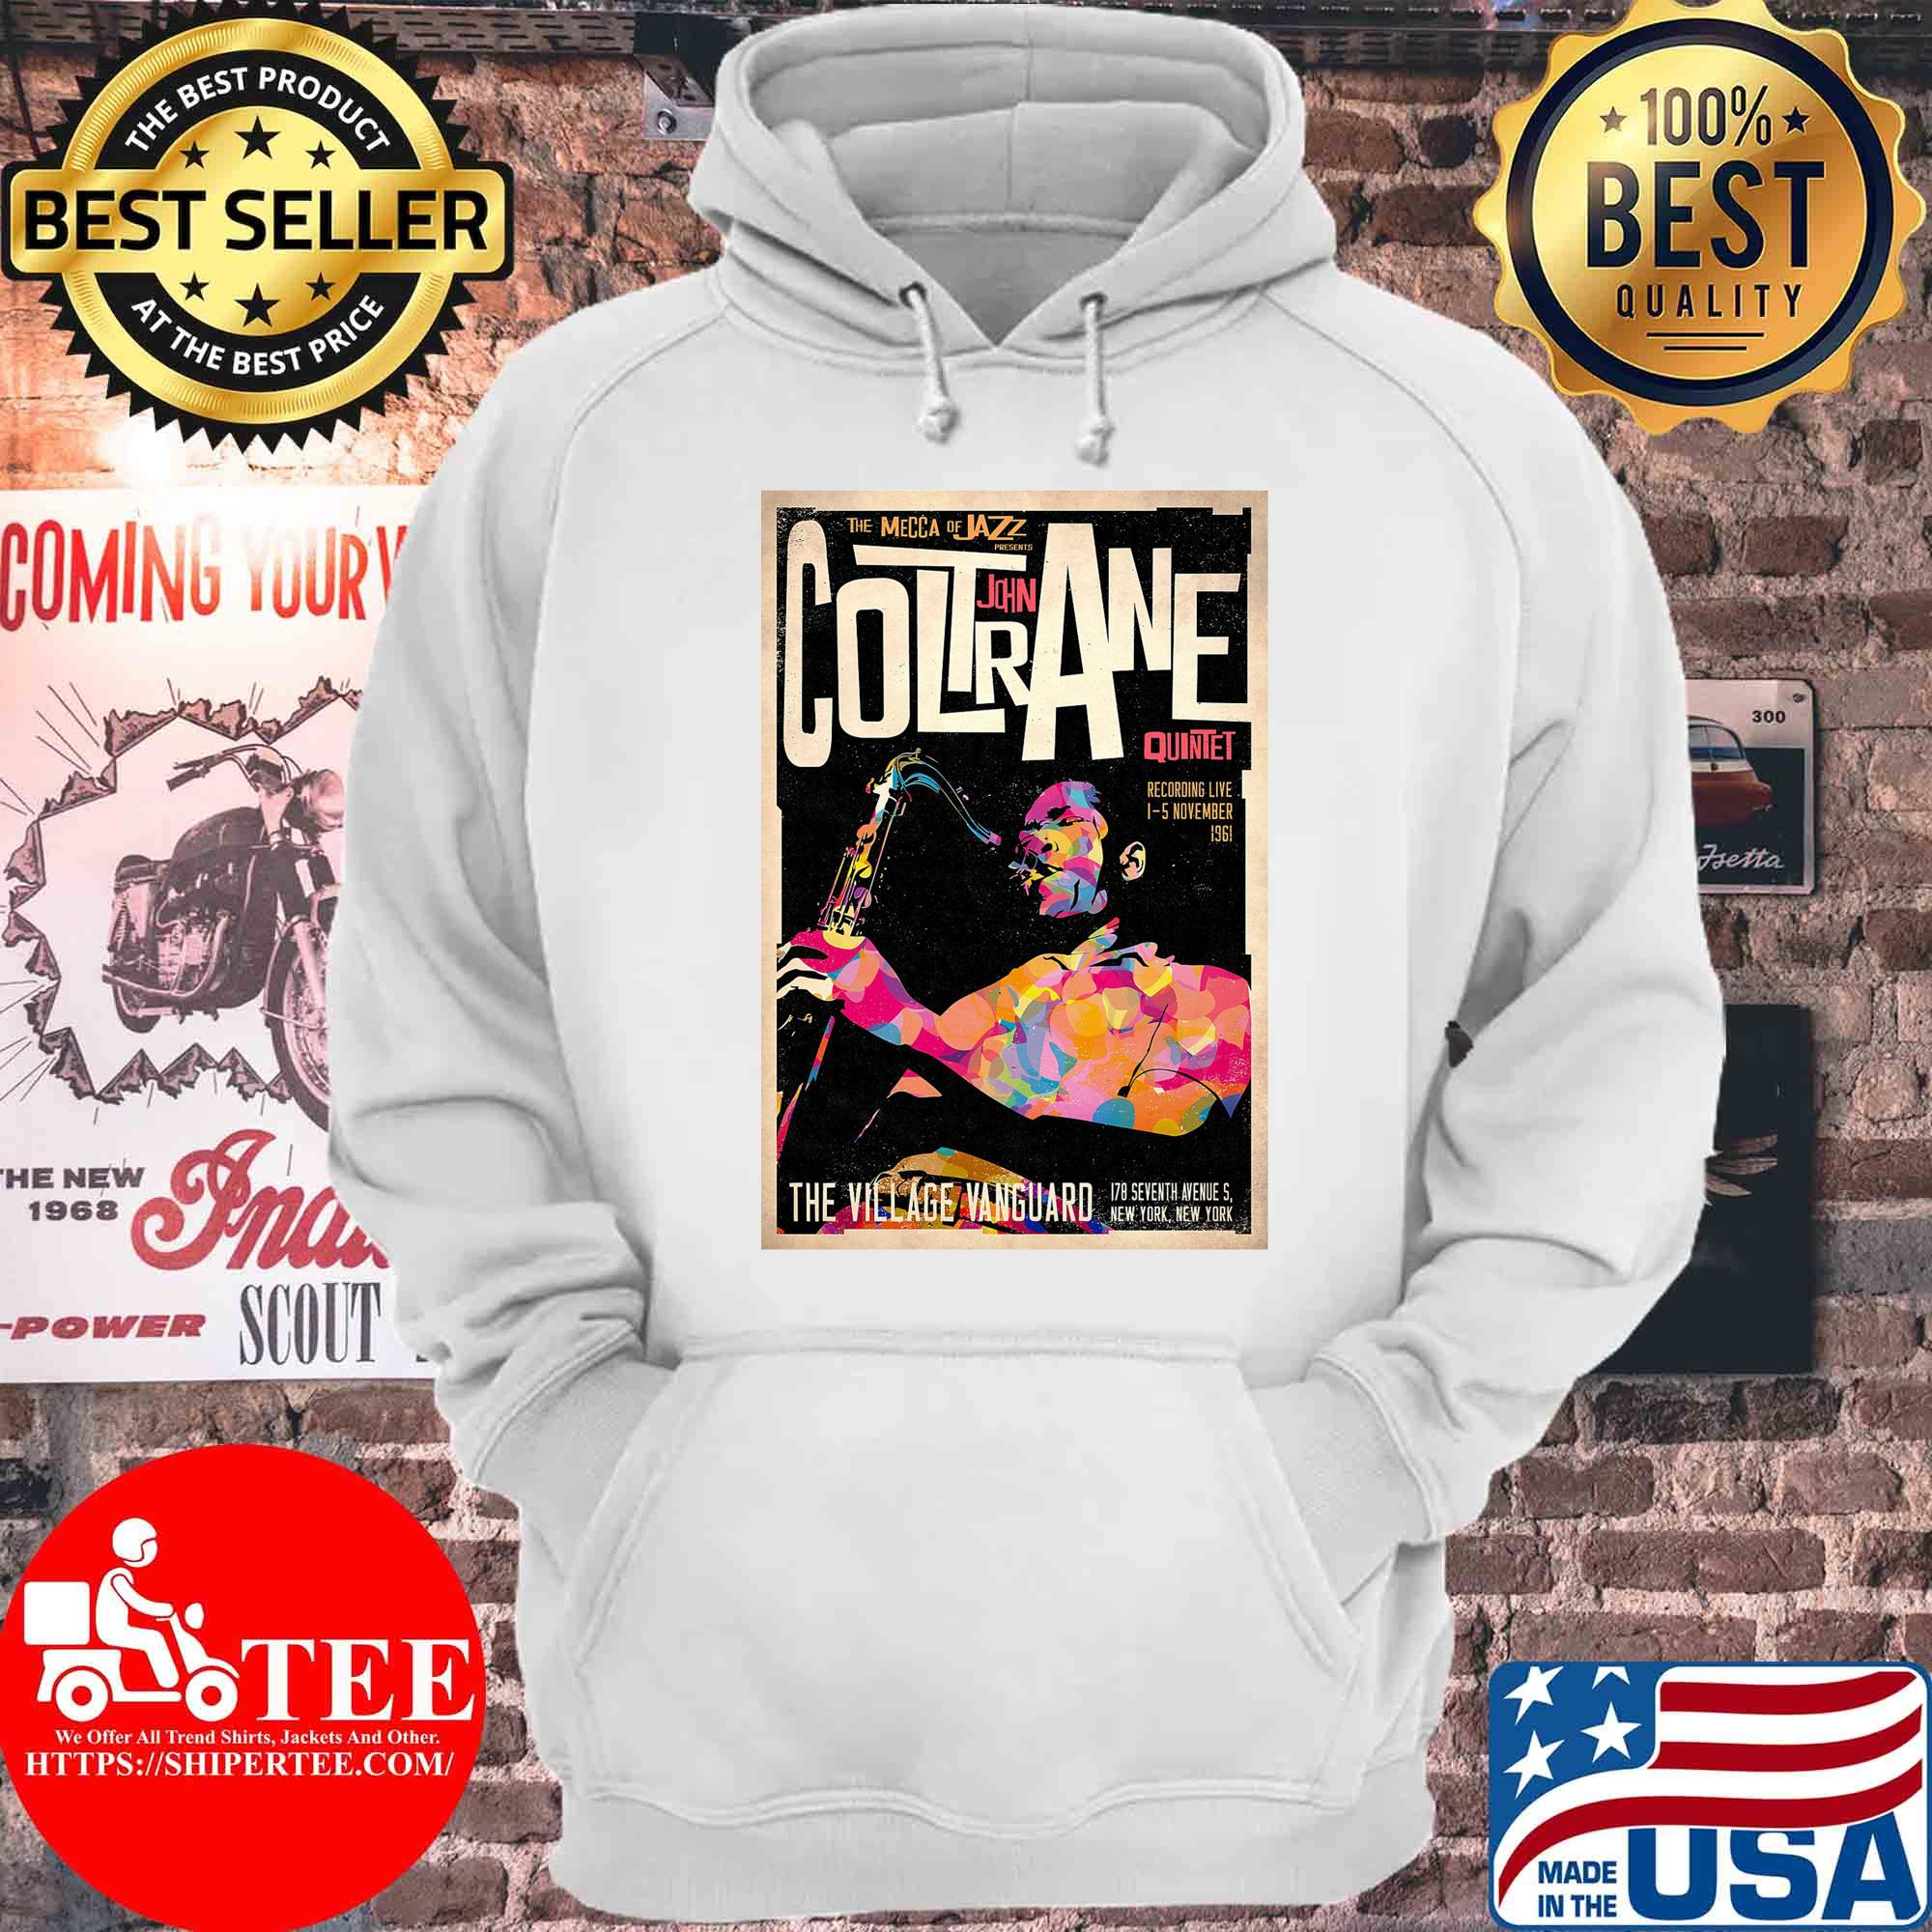 The mecca of jazz presents coltrane john quintet the village vanguard s Hoodie